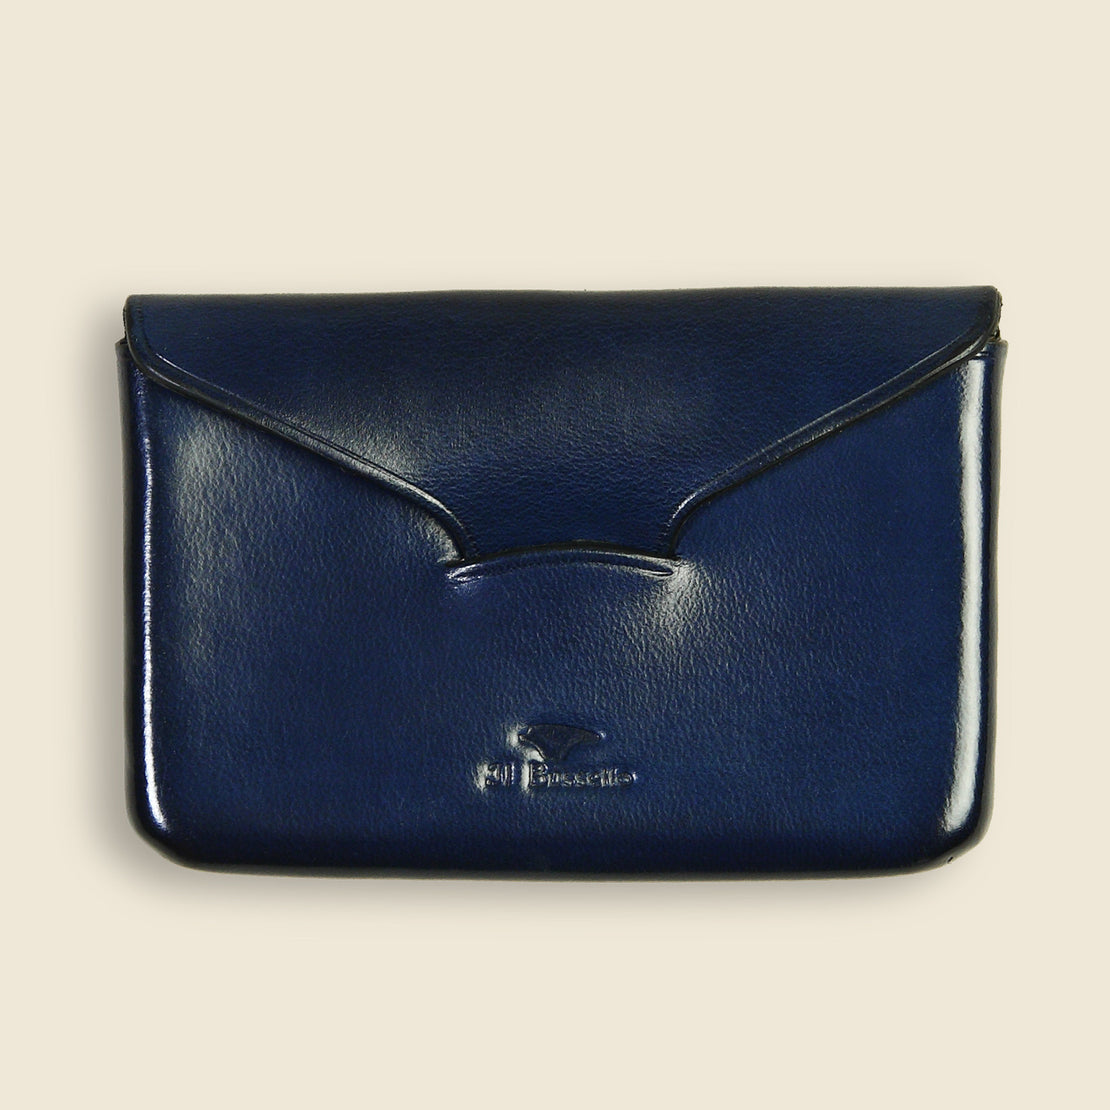 Il Bussetto Business Card Holder - Navy